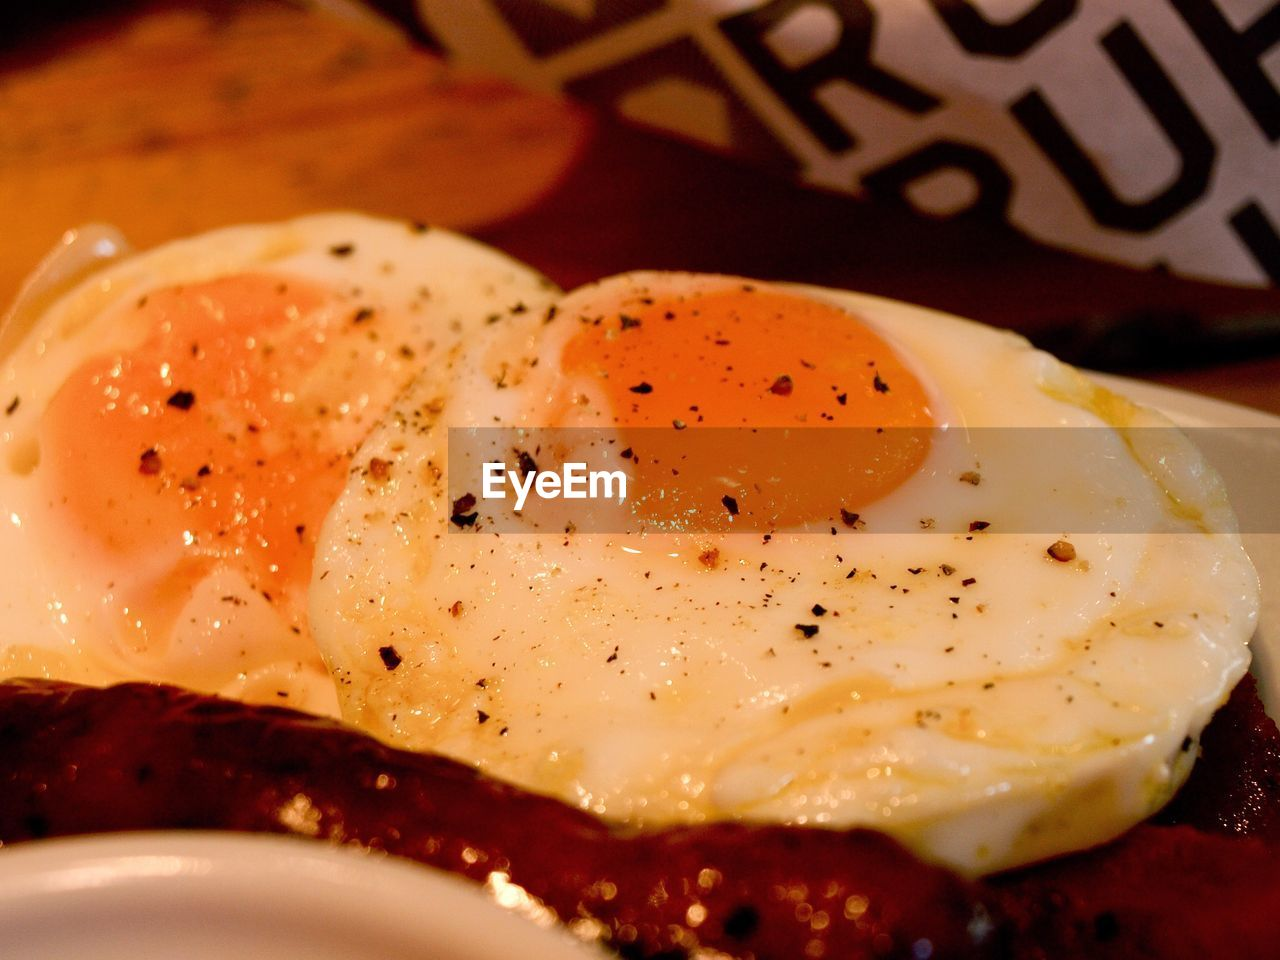 egg, egg yolk, breakfast, fried egg, food, food and drink, sunny side up, plate, pepper - seasoning, fried, no people, selective focus, indoors, close-up, bread, freshness, healthy eating, meal, toasted, poached, ready-to-eat, toasted bread